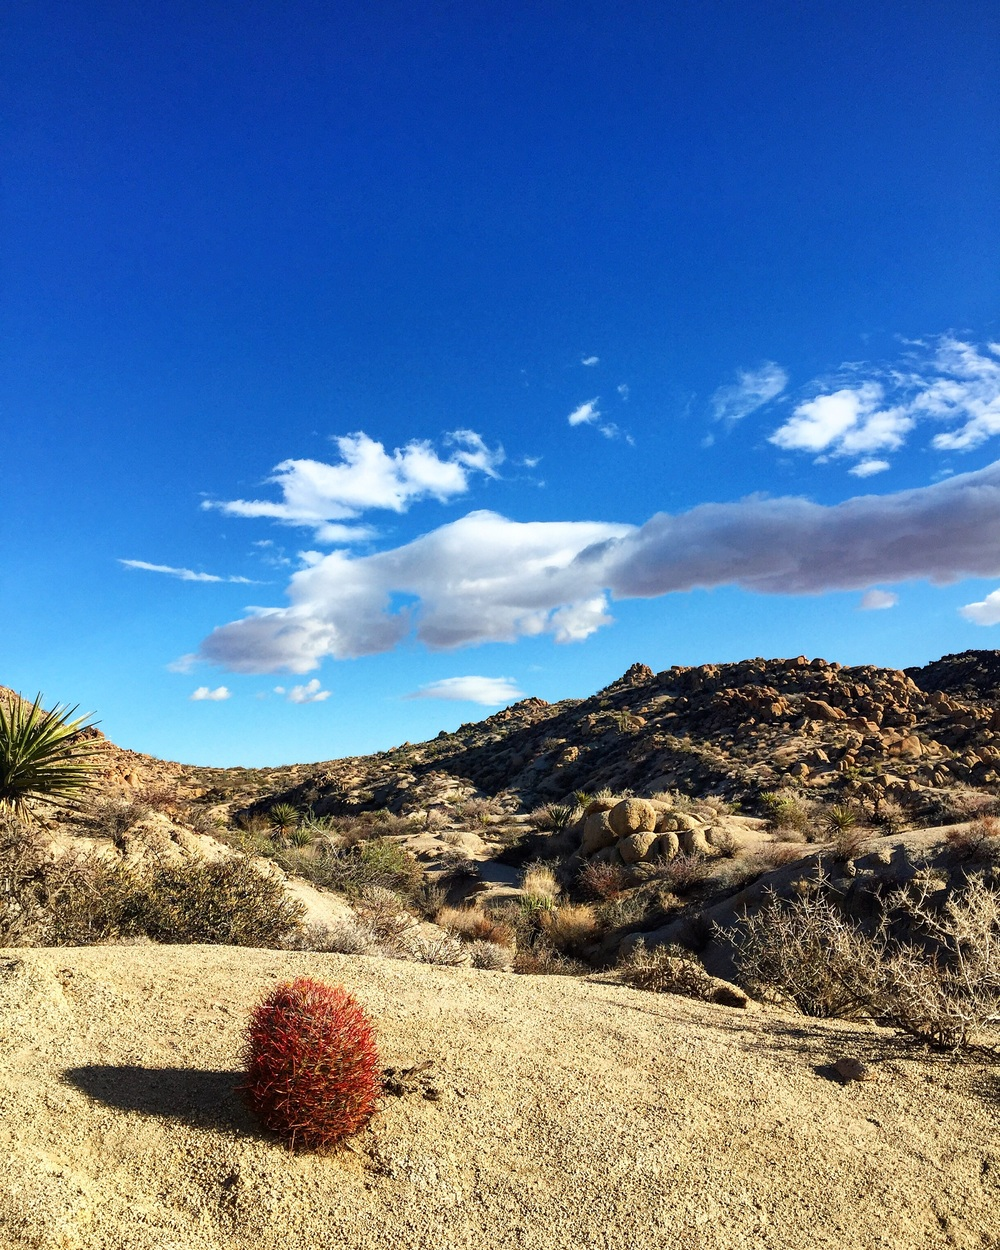 Bartholomew The Barrel Cactus// Joshua Tree, California